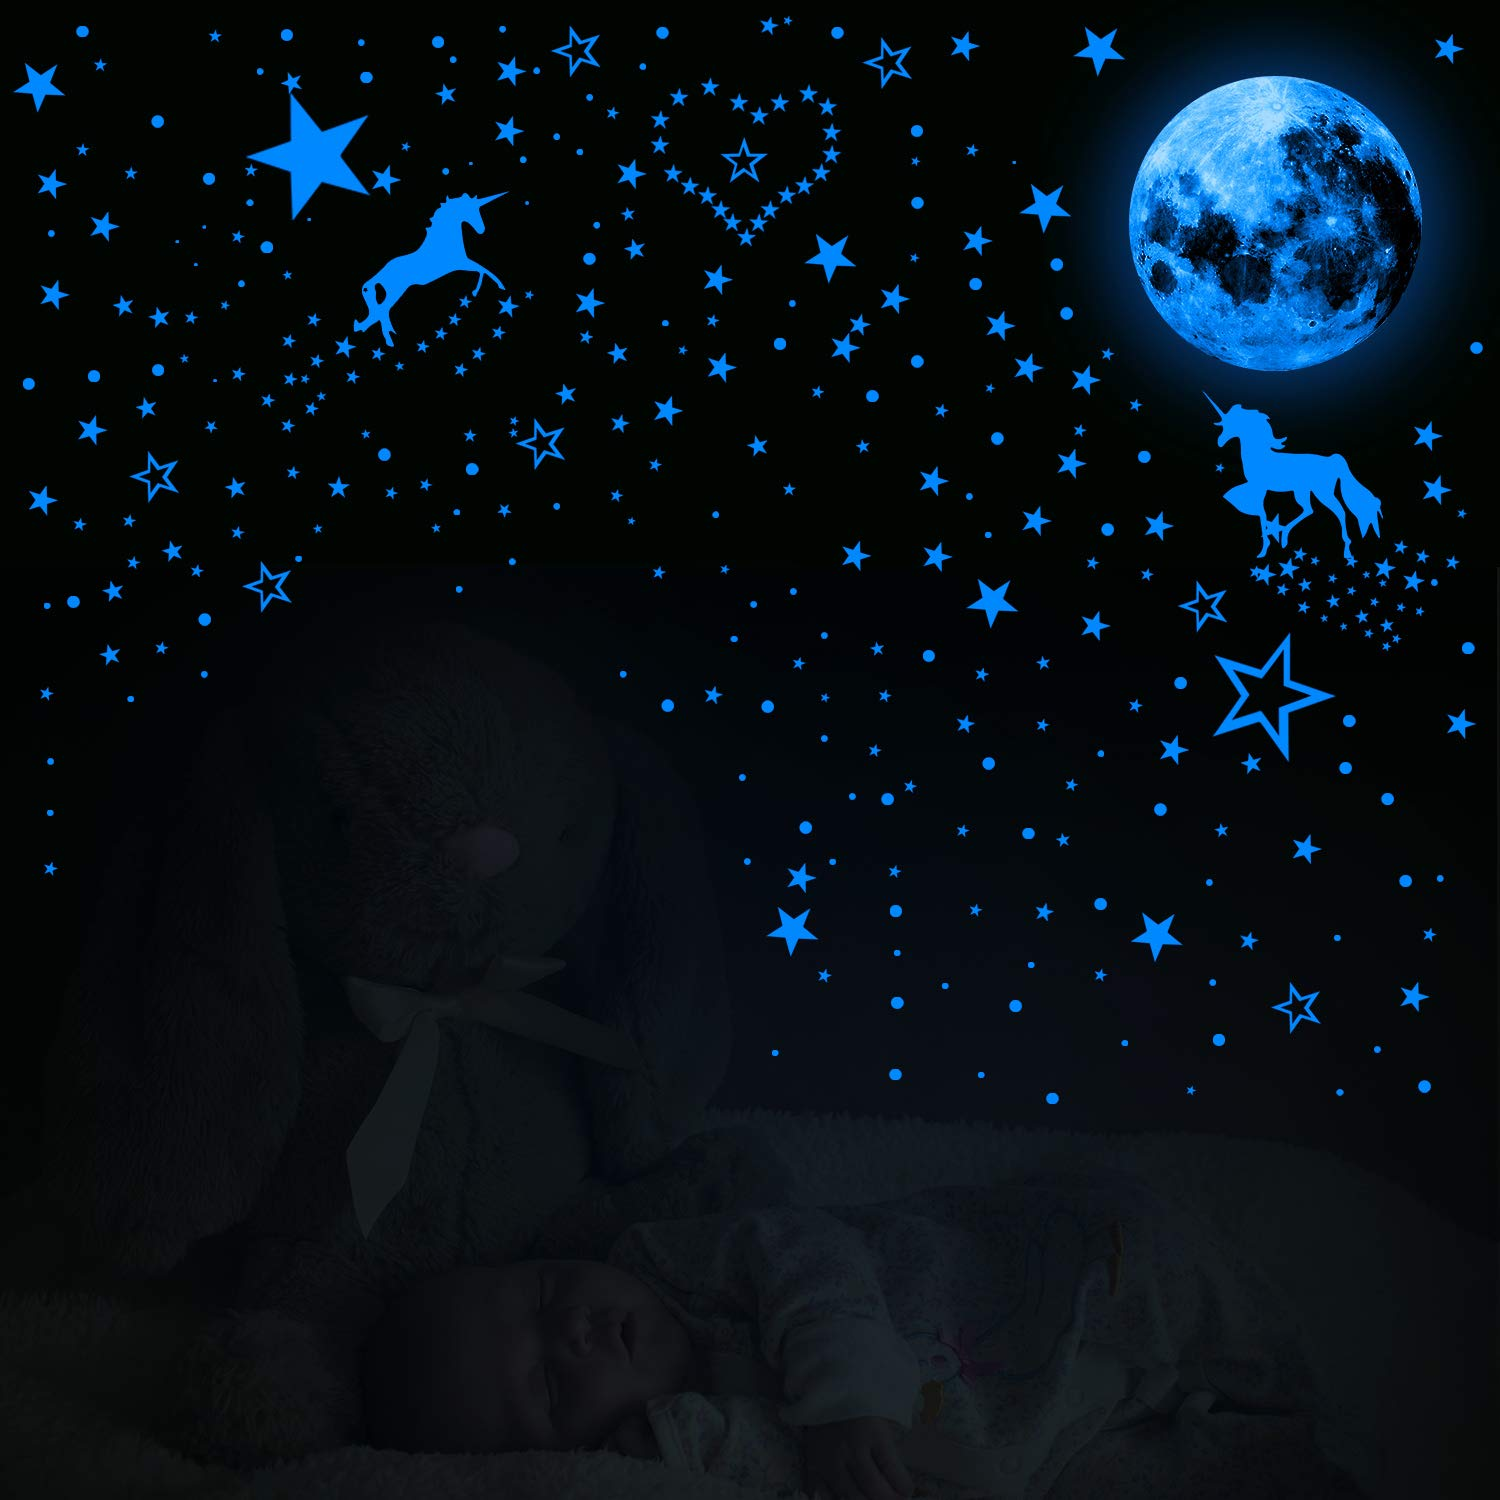 466 Pieces Glow in The Dark Unicorn Wall Decals with Luminous Star Moon Dot Stickers Fluorescent Ceiling Stickers for Kids Baby Room Decoration or Family Gatherings Fluorescent Blue